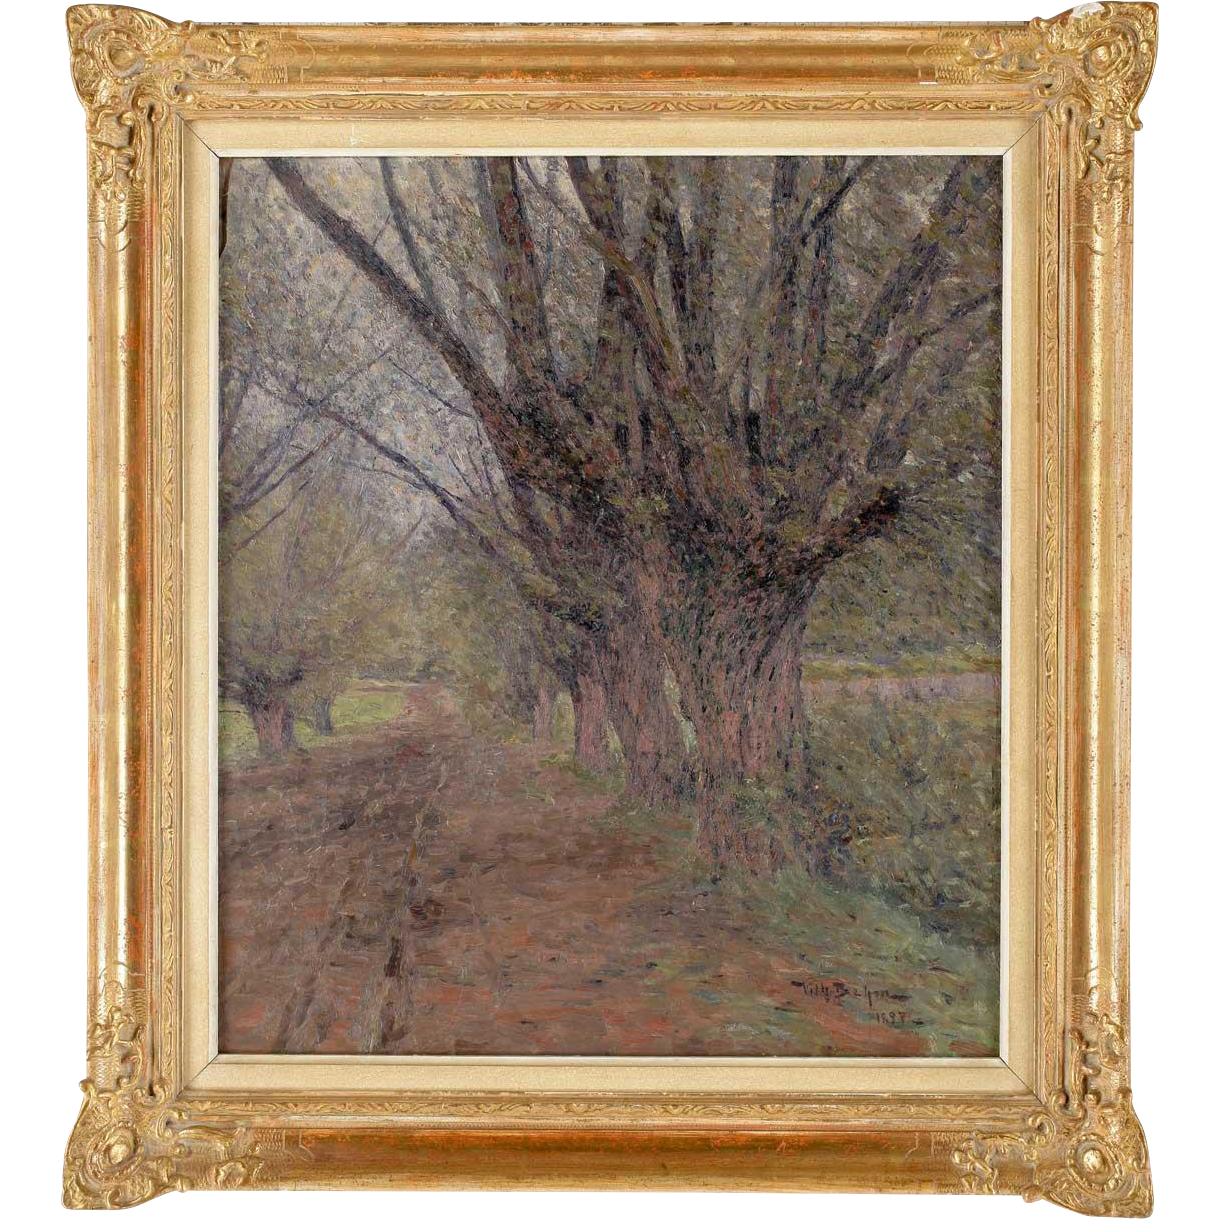 WILHELM BEHM Oil on Canvas Painting, Country Lane